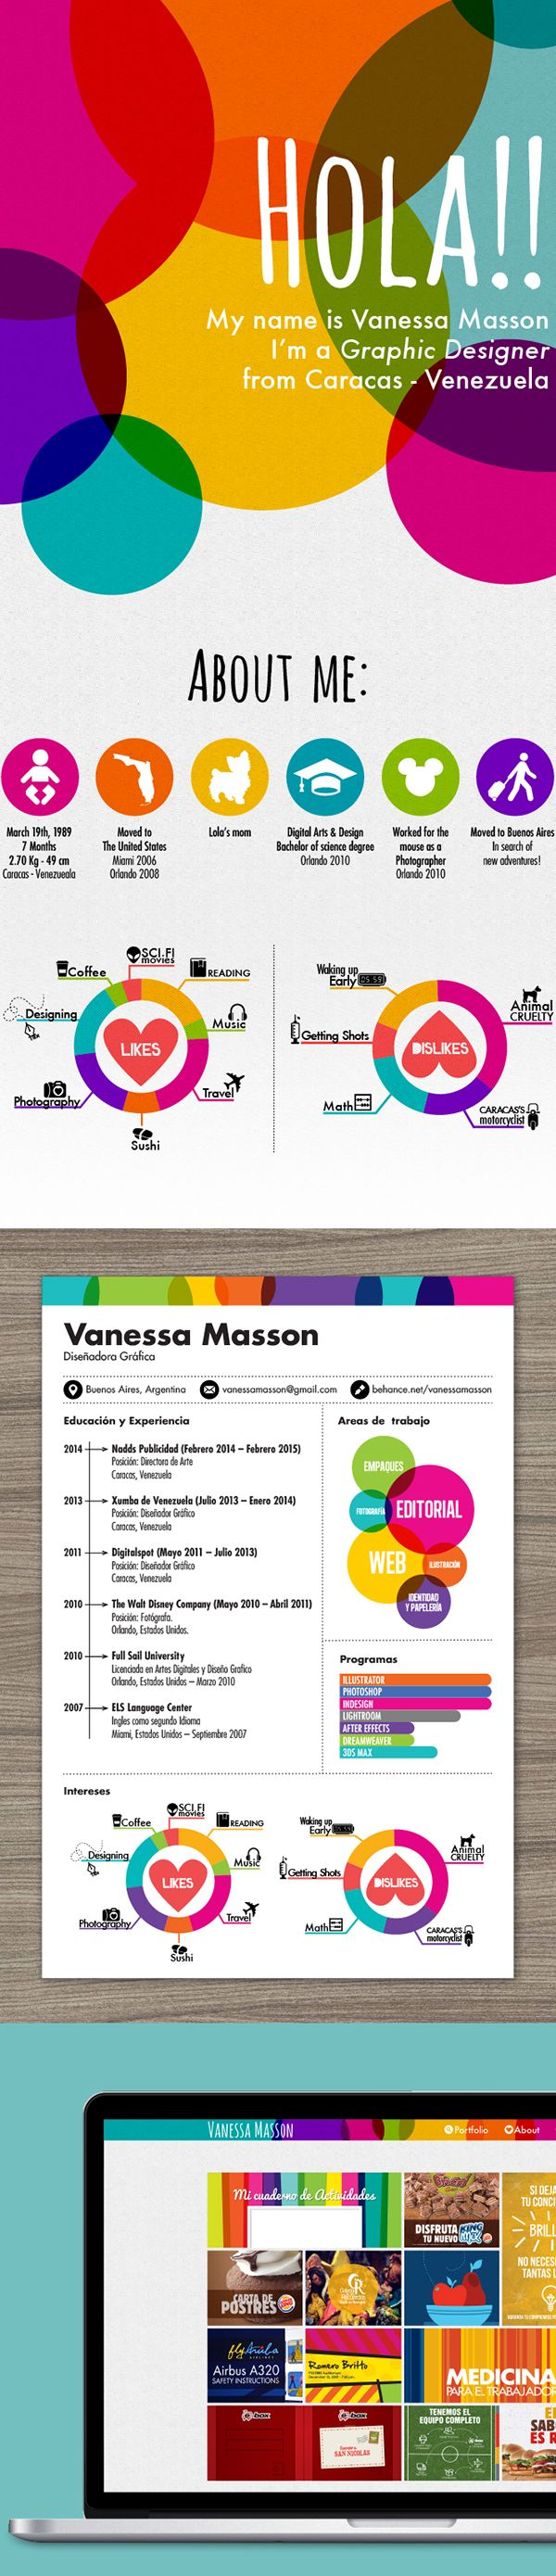 Hi I'm Vanessa Masson, graphic designer from Venezuela. This is my cv feel free to email me :)